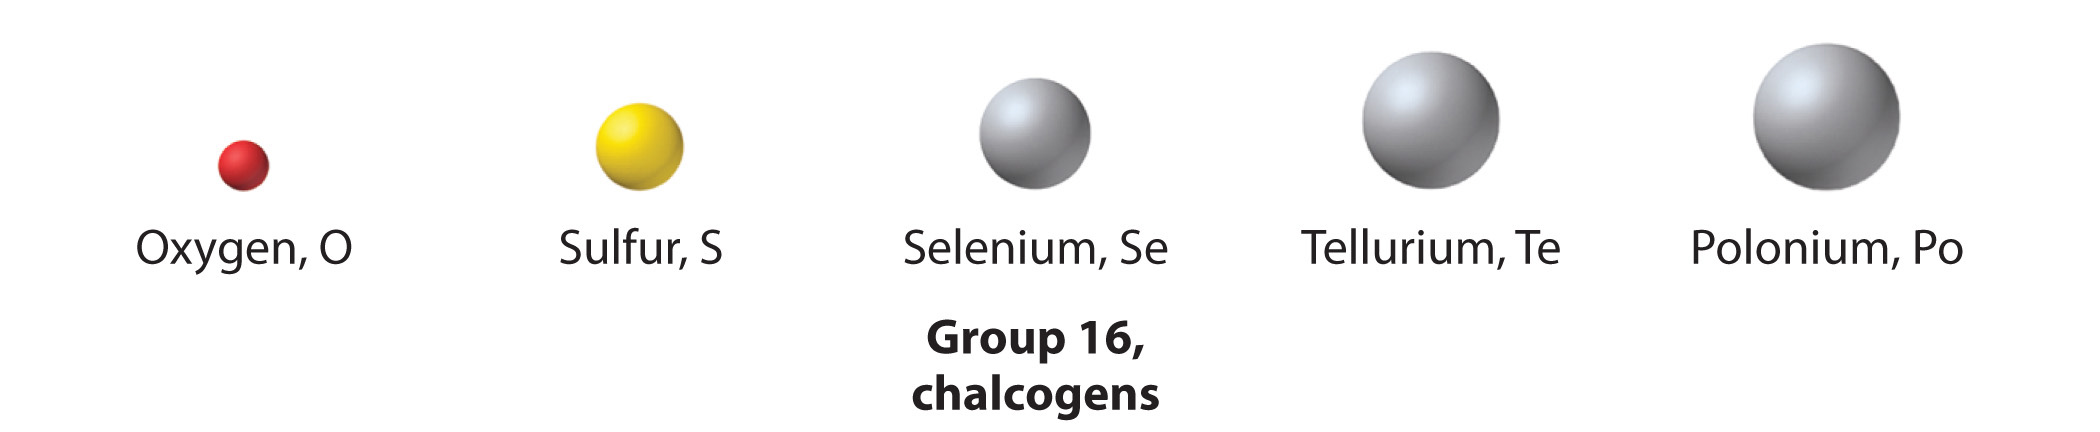 The periodic table and periodic trends group 16 the chalcogens gamestrikefo Image collections